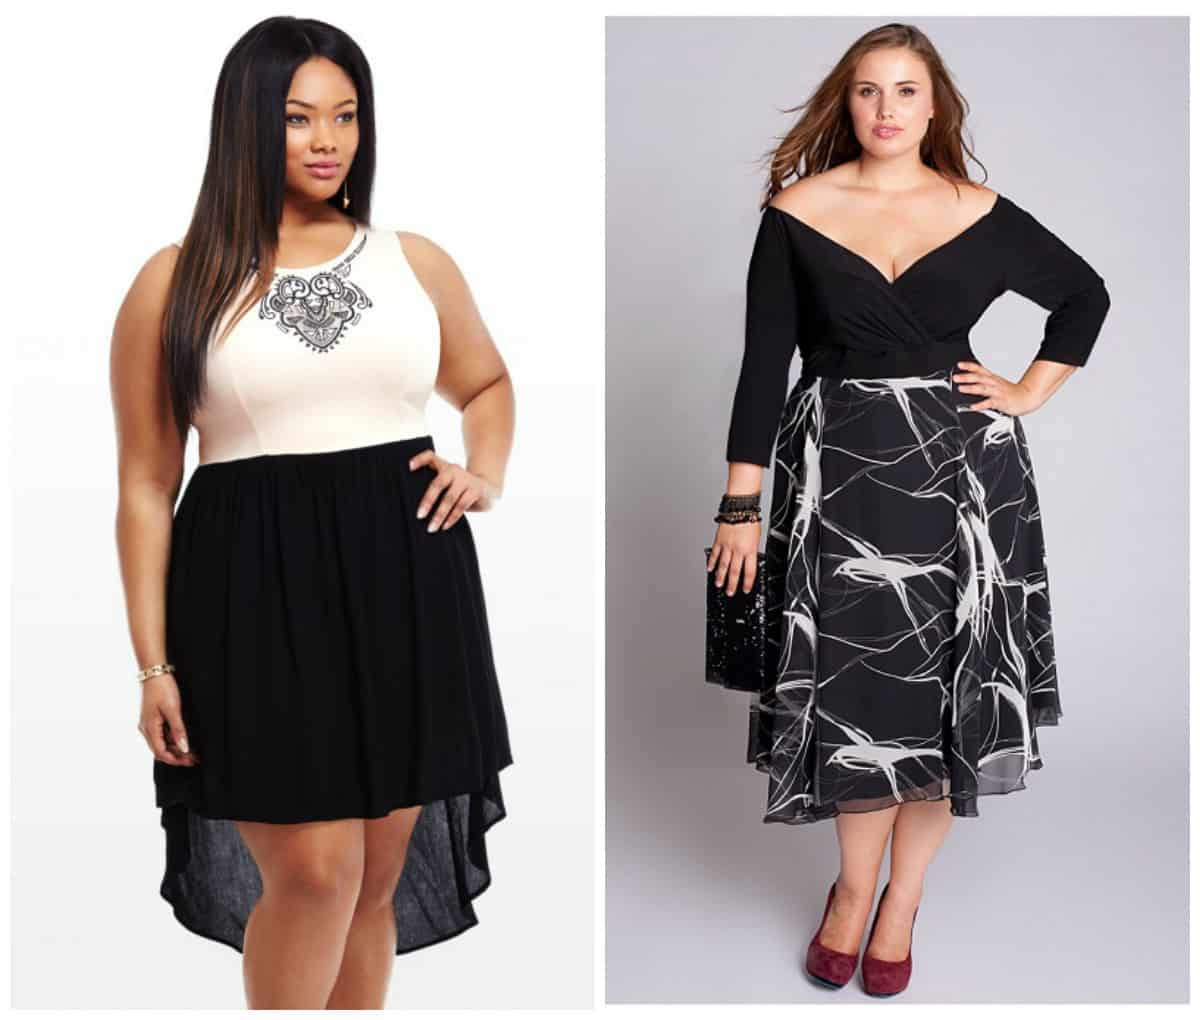 Women's-plus-size-cocktail-and-evening-dresses-2016-4